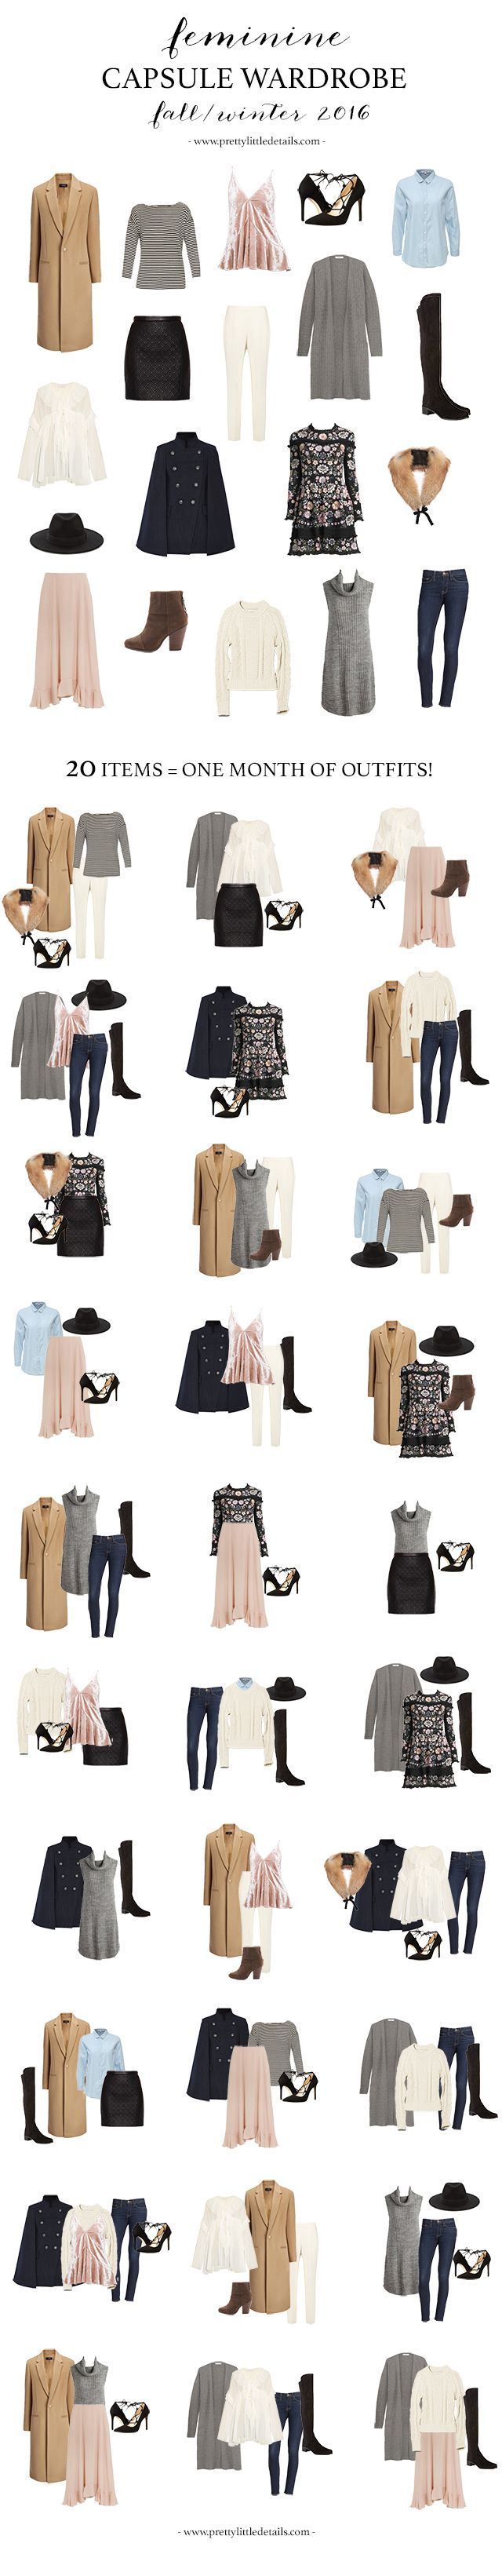 How to create a stylish capsule wardrobe filled with minimalist, feminine clothes.  All the basics you need plus the best of fall 2016 trends!